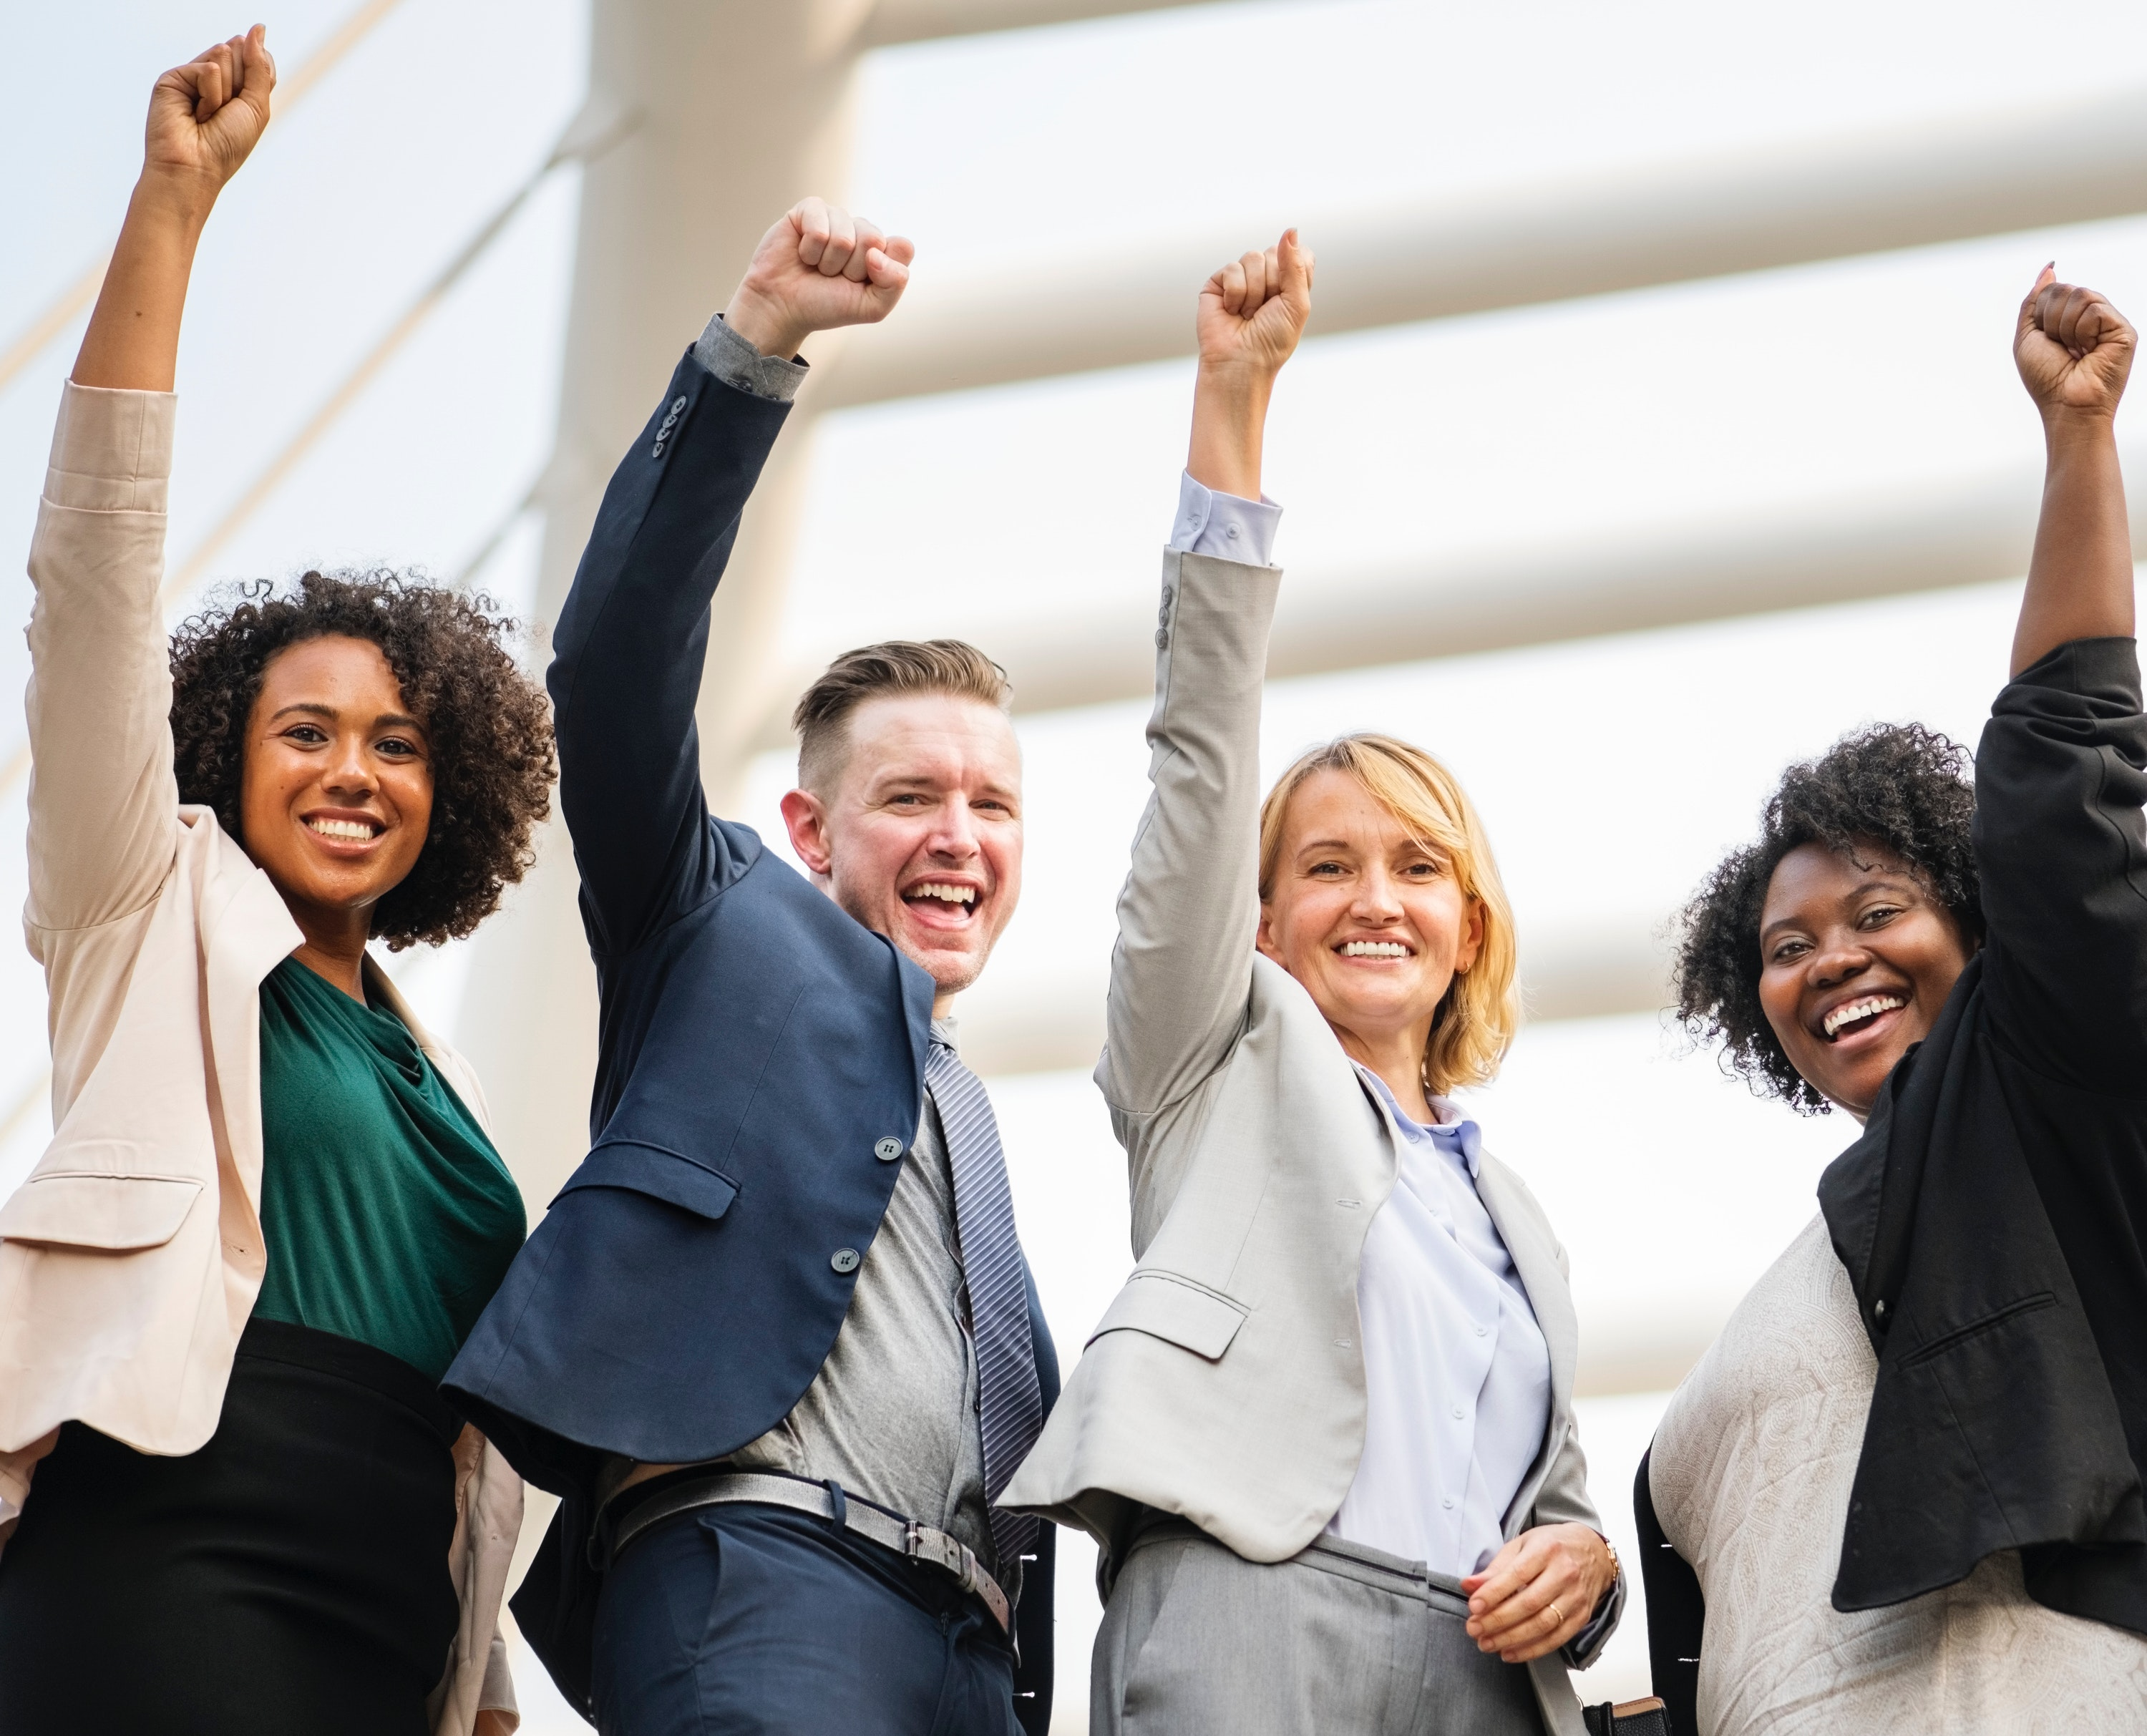 Group of professionals celebrating success